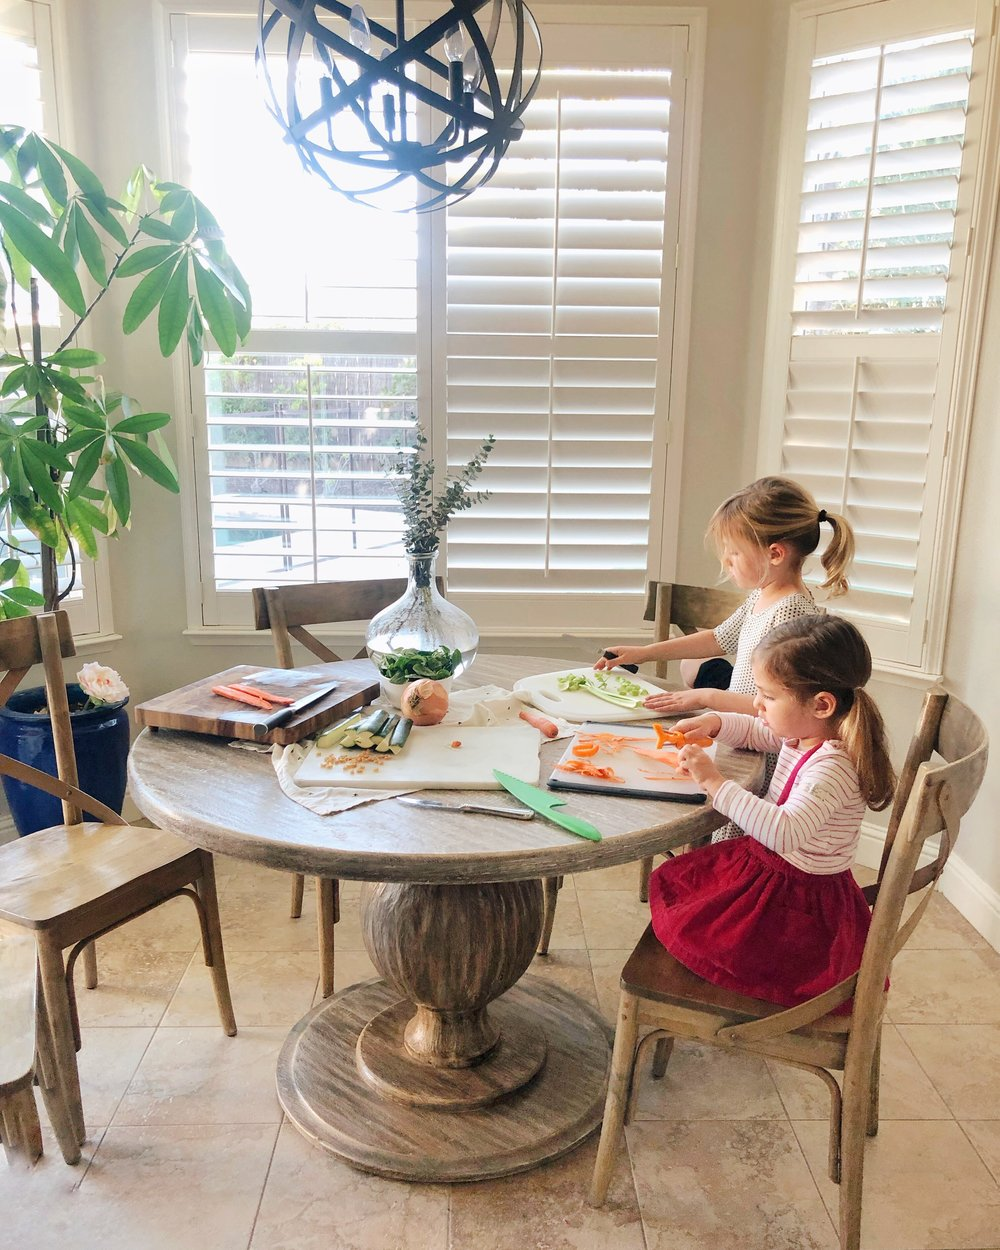 Tips for inviting kids into the kitchen to make dinner. www.ChefShayna.com